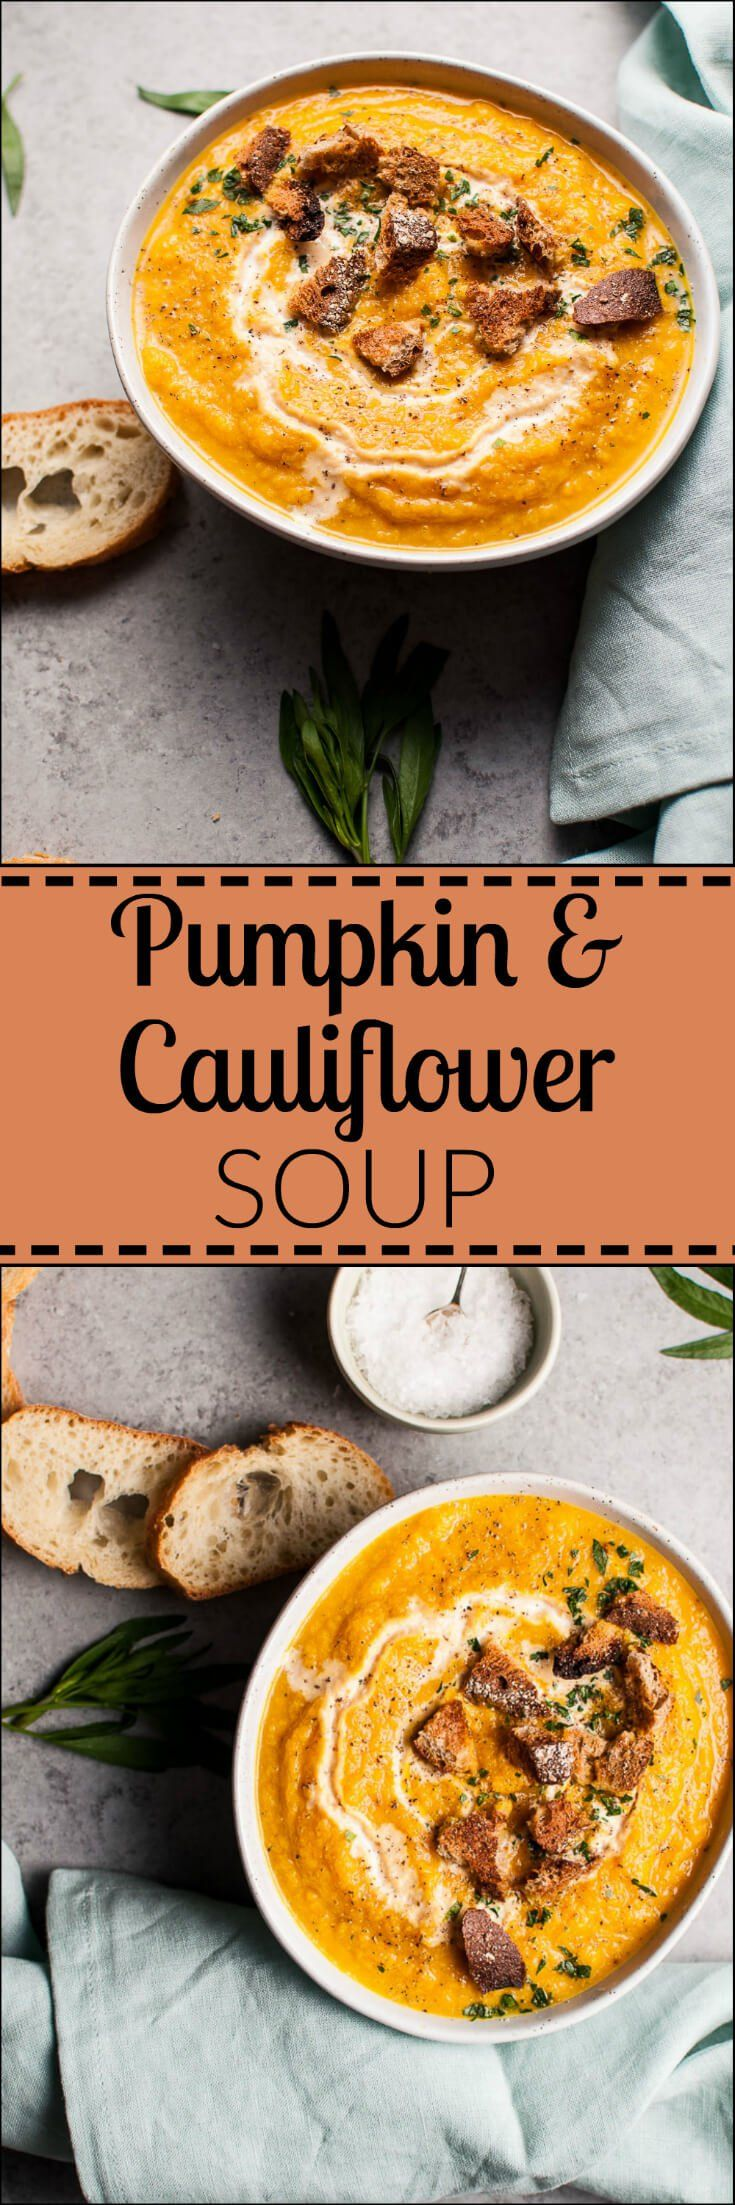 One-Pot Comfort Food: This Pumpkin & Cauliflower Soup also happens to be vegan! Serve as a meal or an appetizer.  Credit: Salt and Lavender